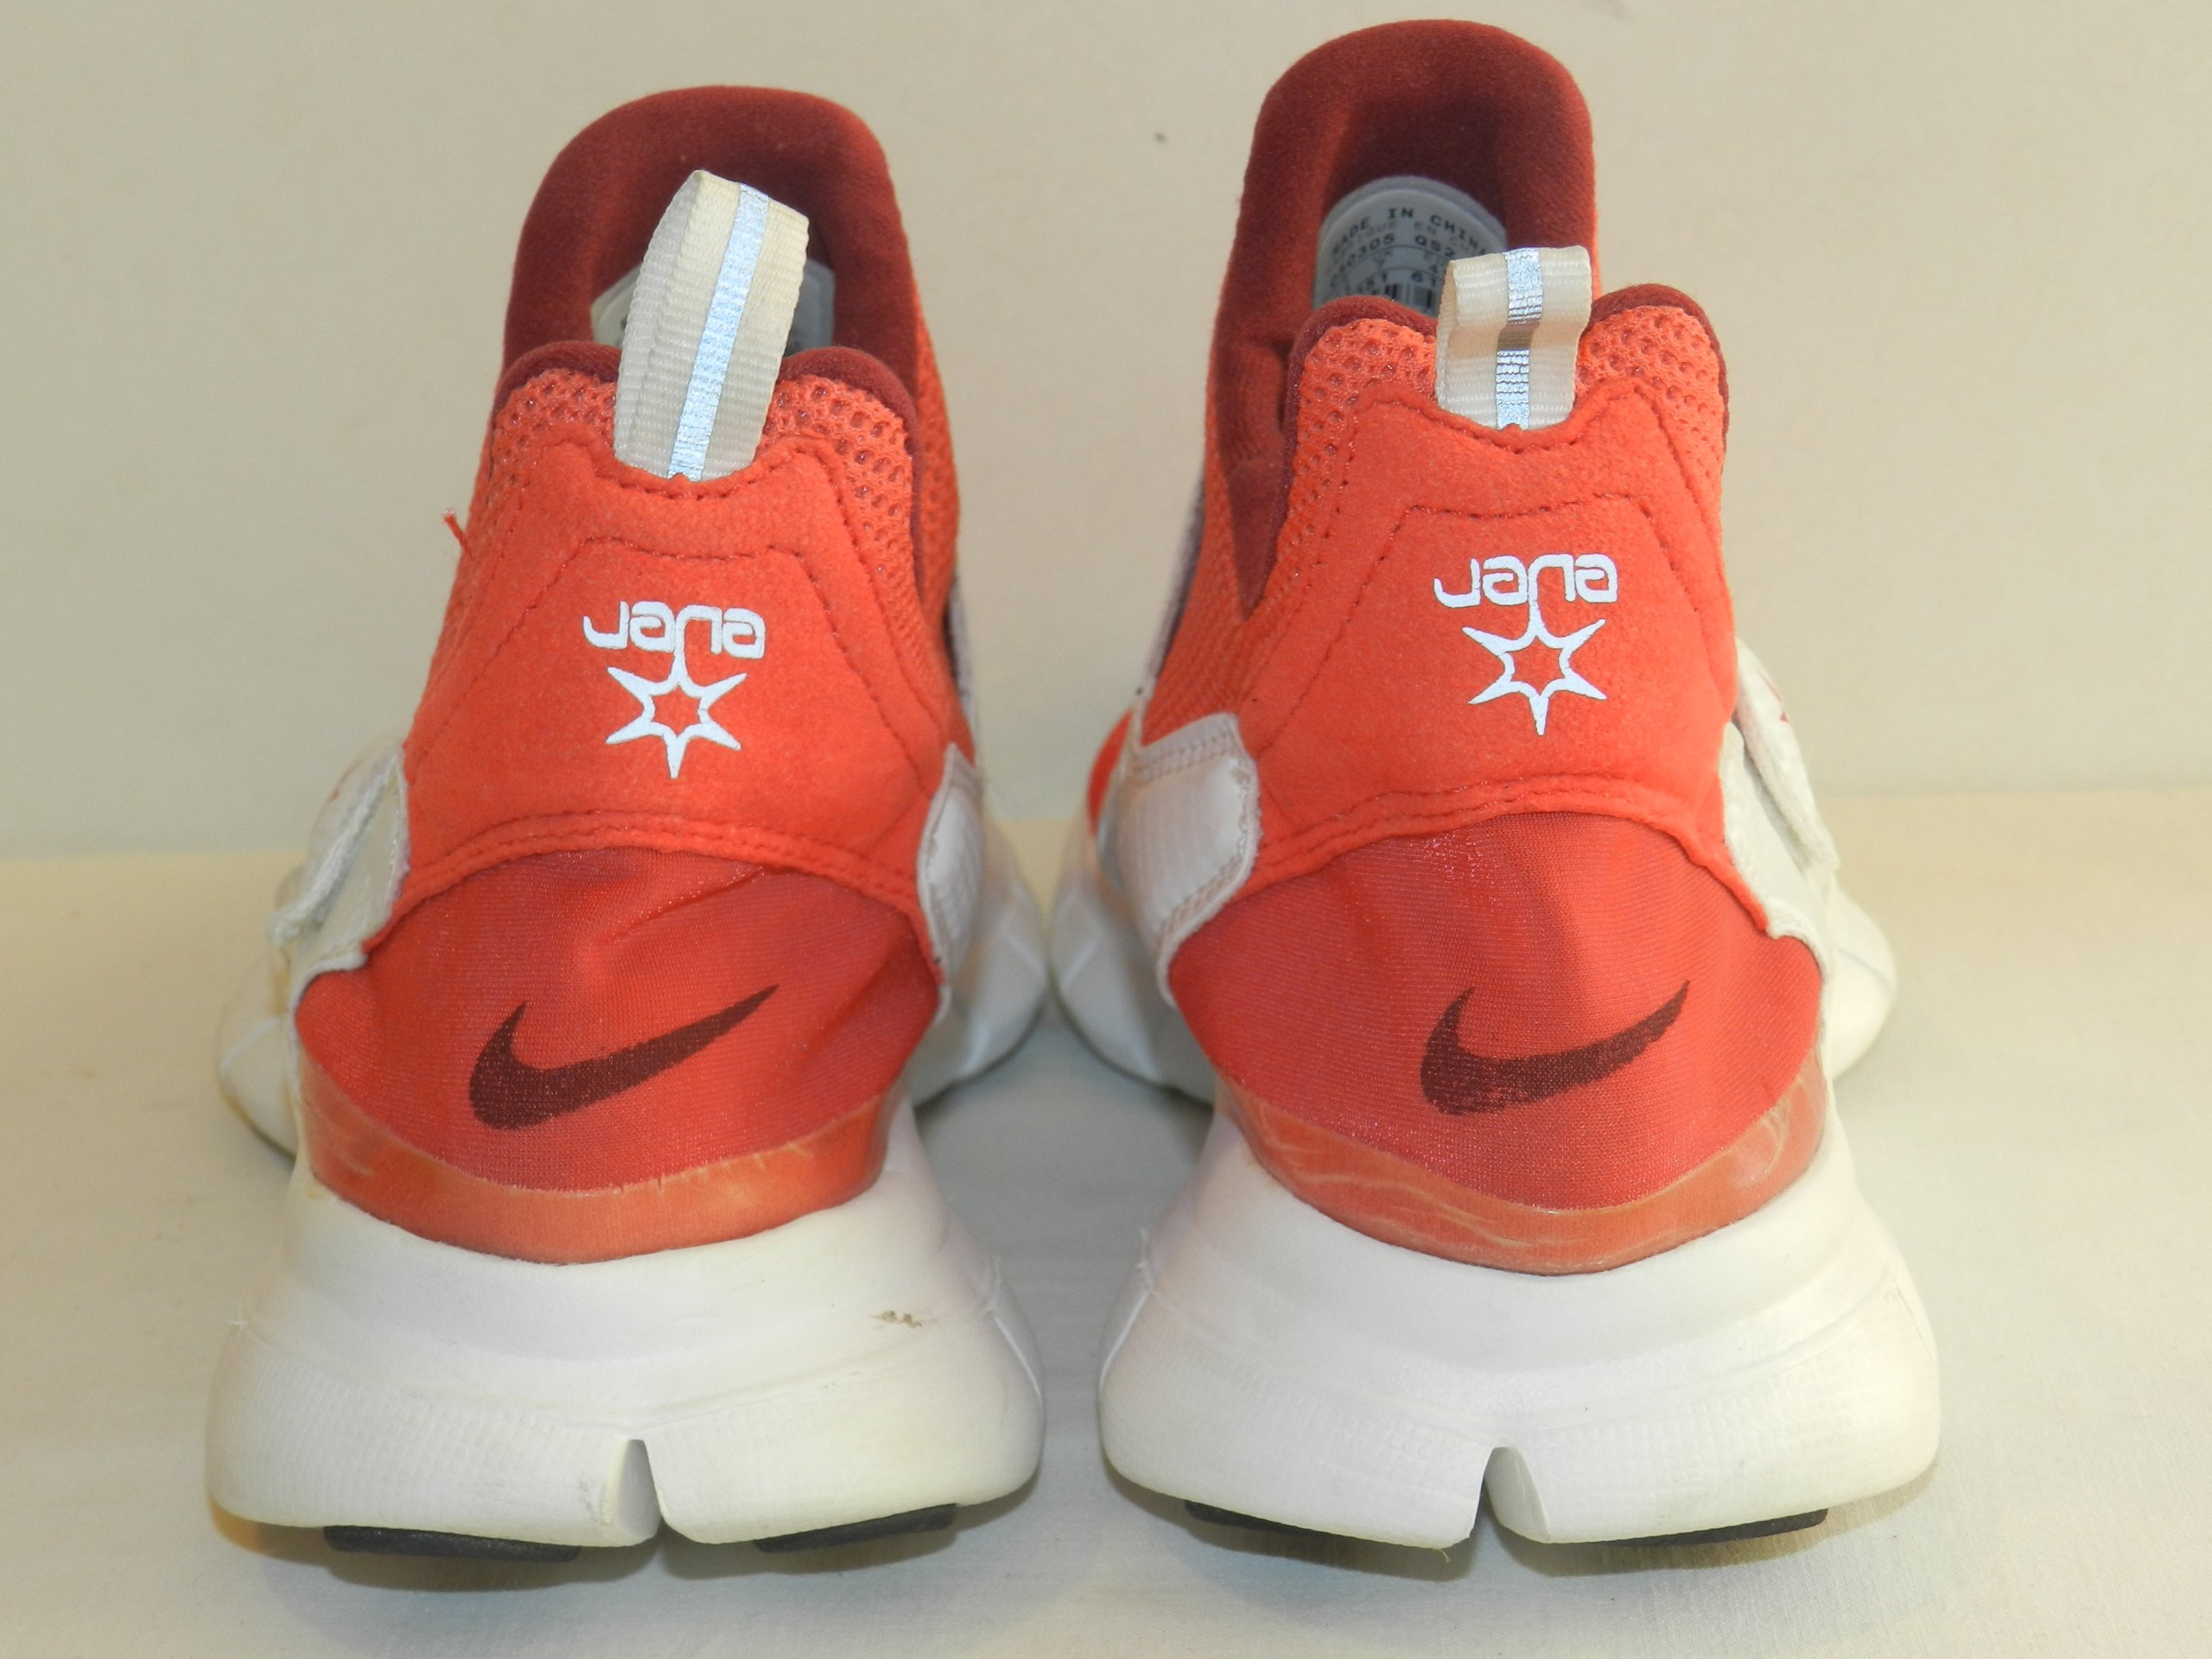 81cb0b127b7 ... authentic nike free 4.0 jana do biegania r.41 7320184625 a9a33 77412